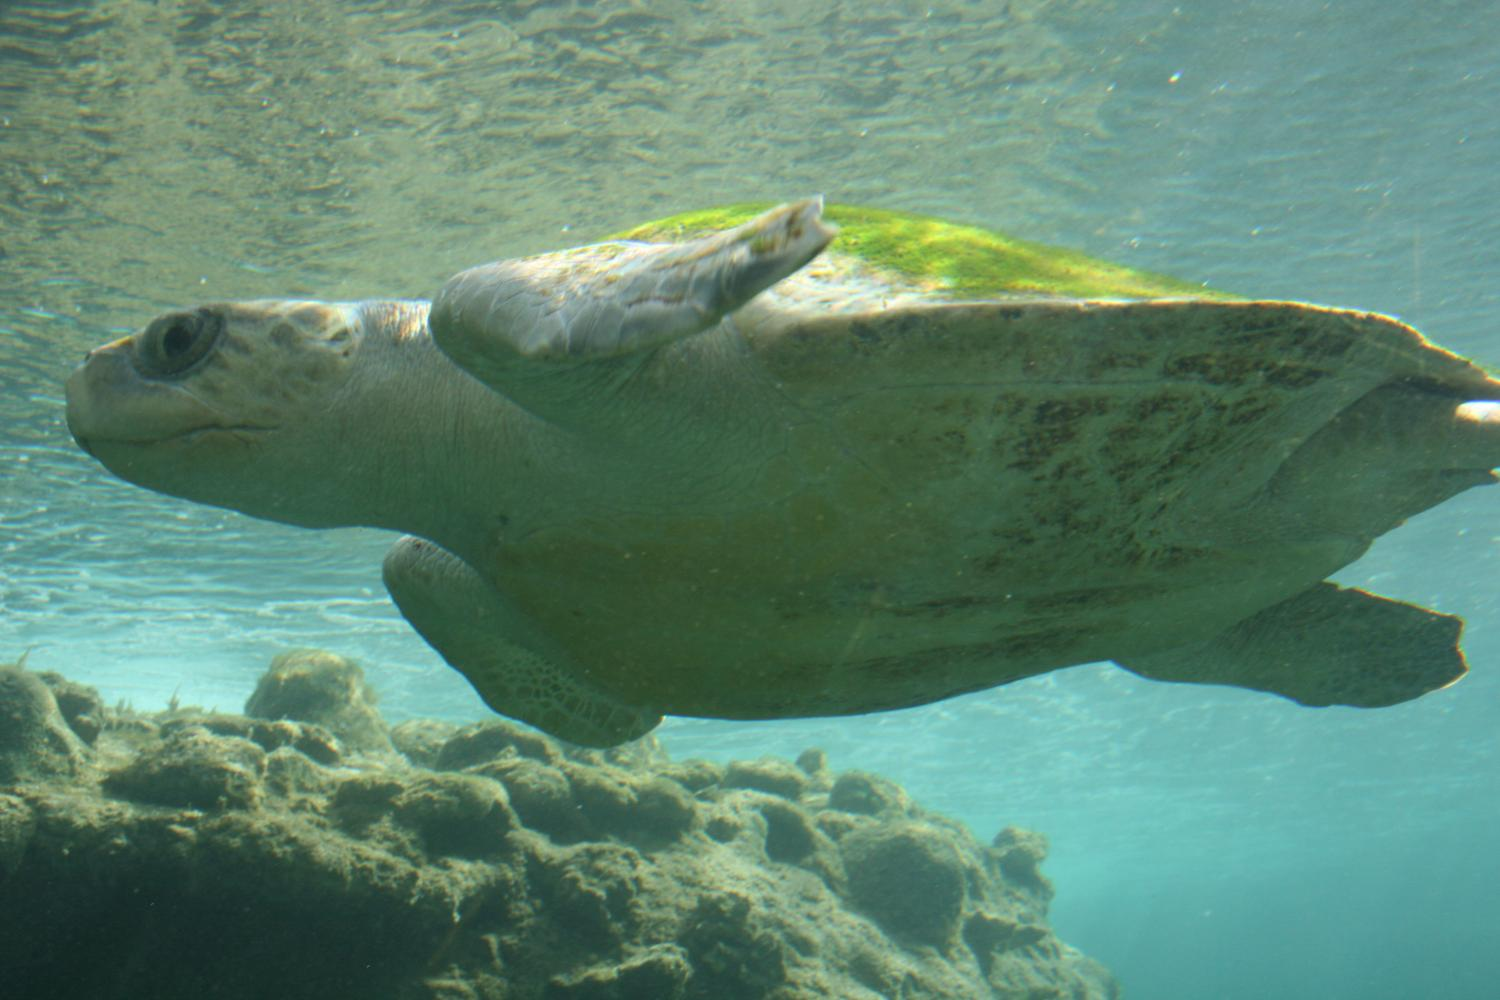 Plastic creates 'evolutionary trap' for young sea turtles